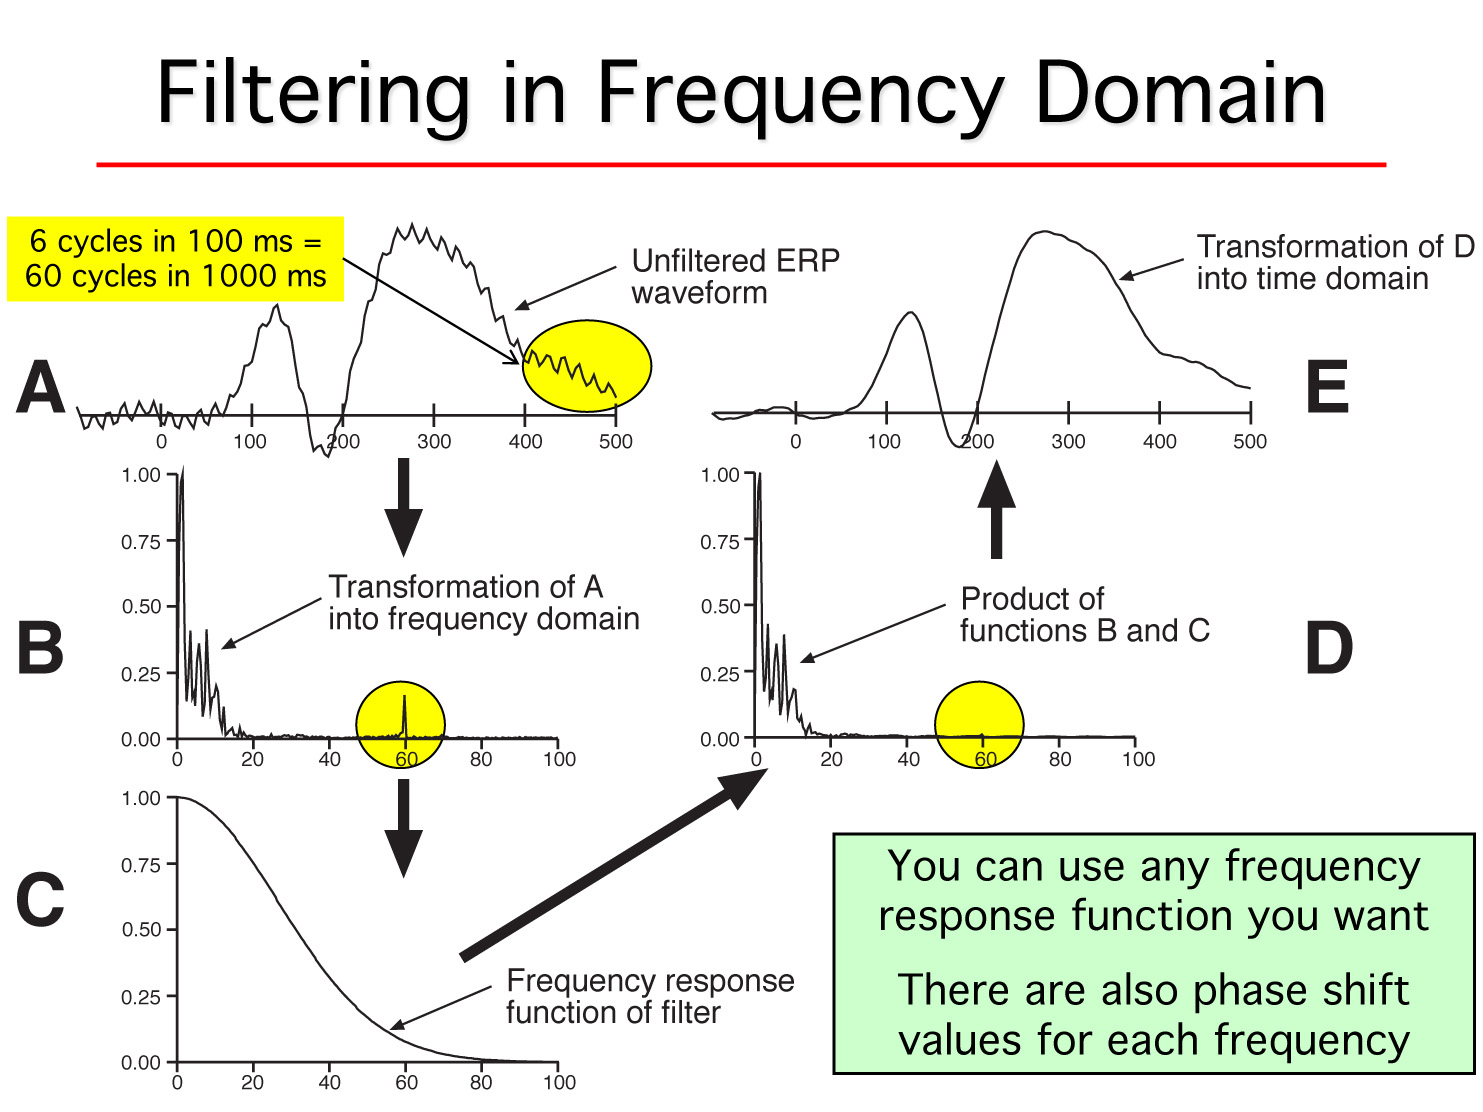 filtering in frequency domain.jpg